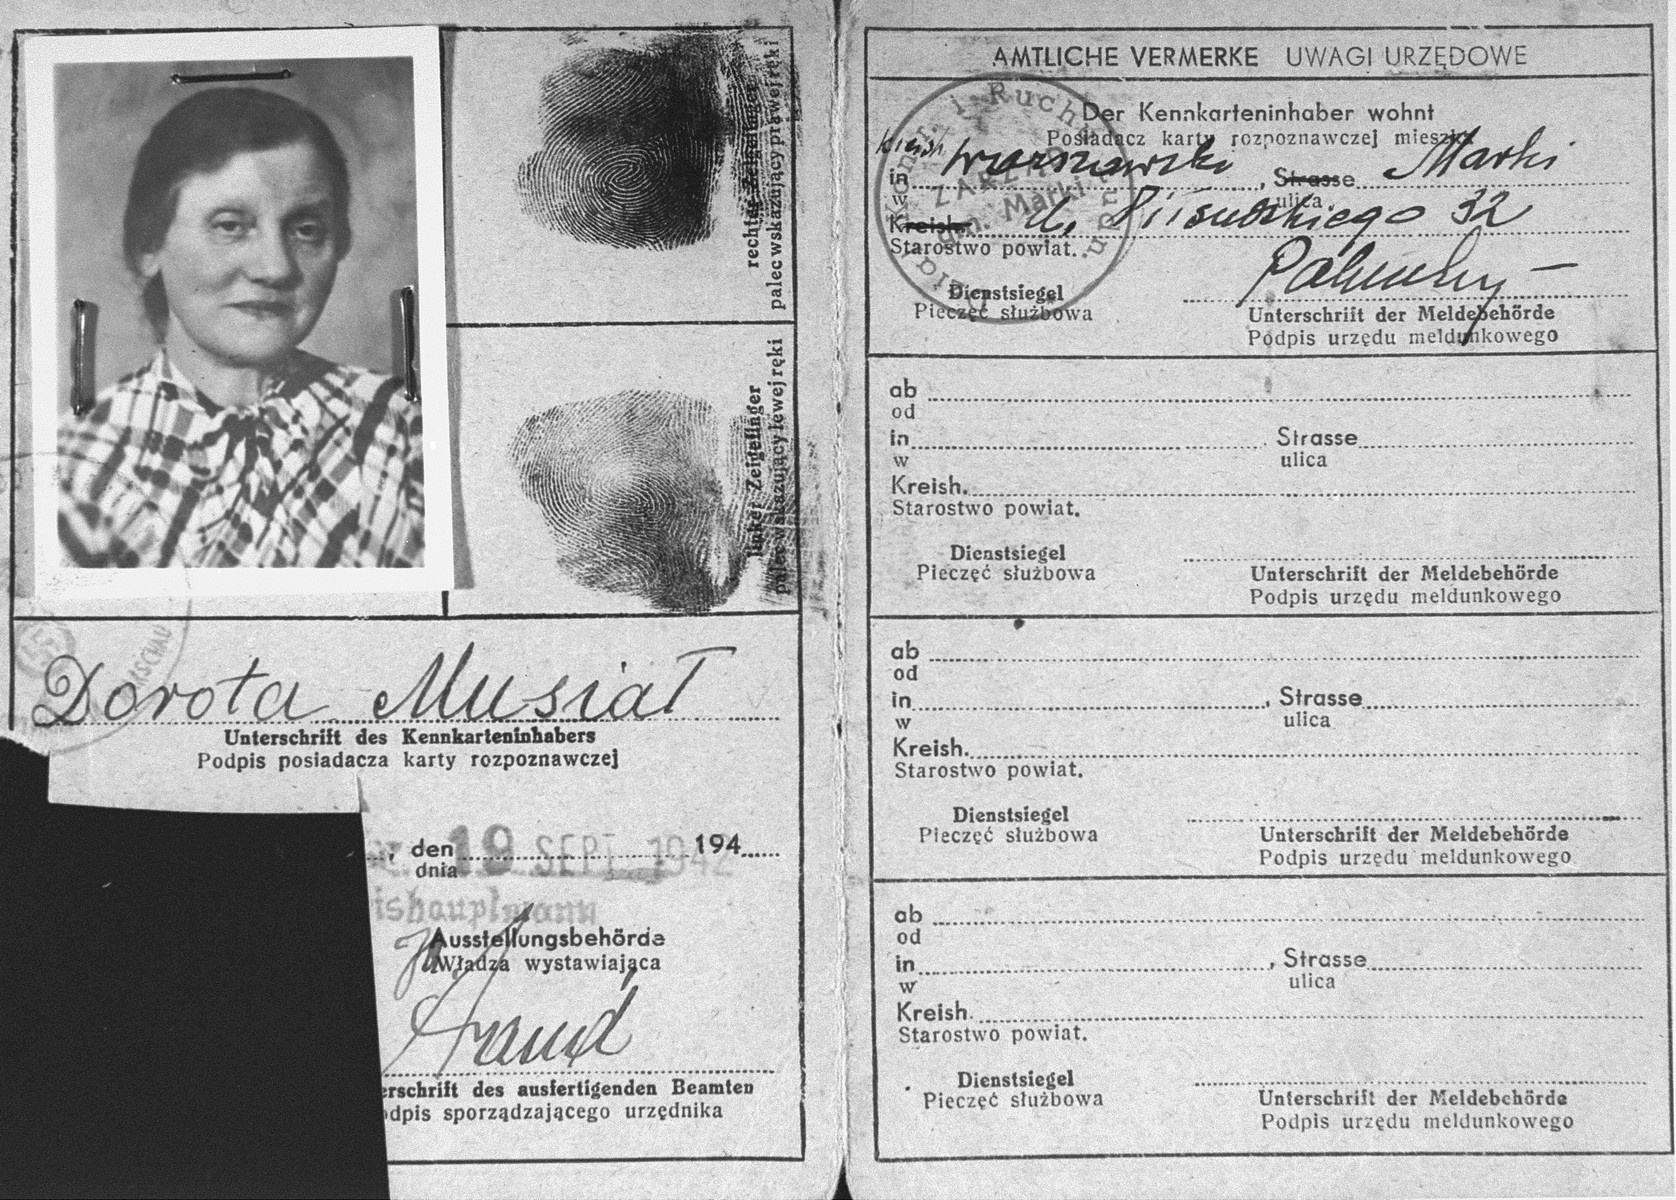 False identification papers used by the donor's mother  during her years of hiding in occupied Poland.